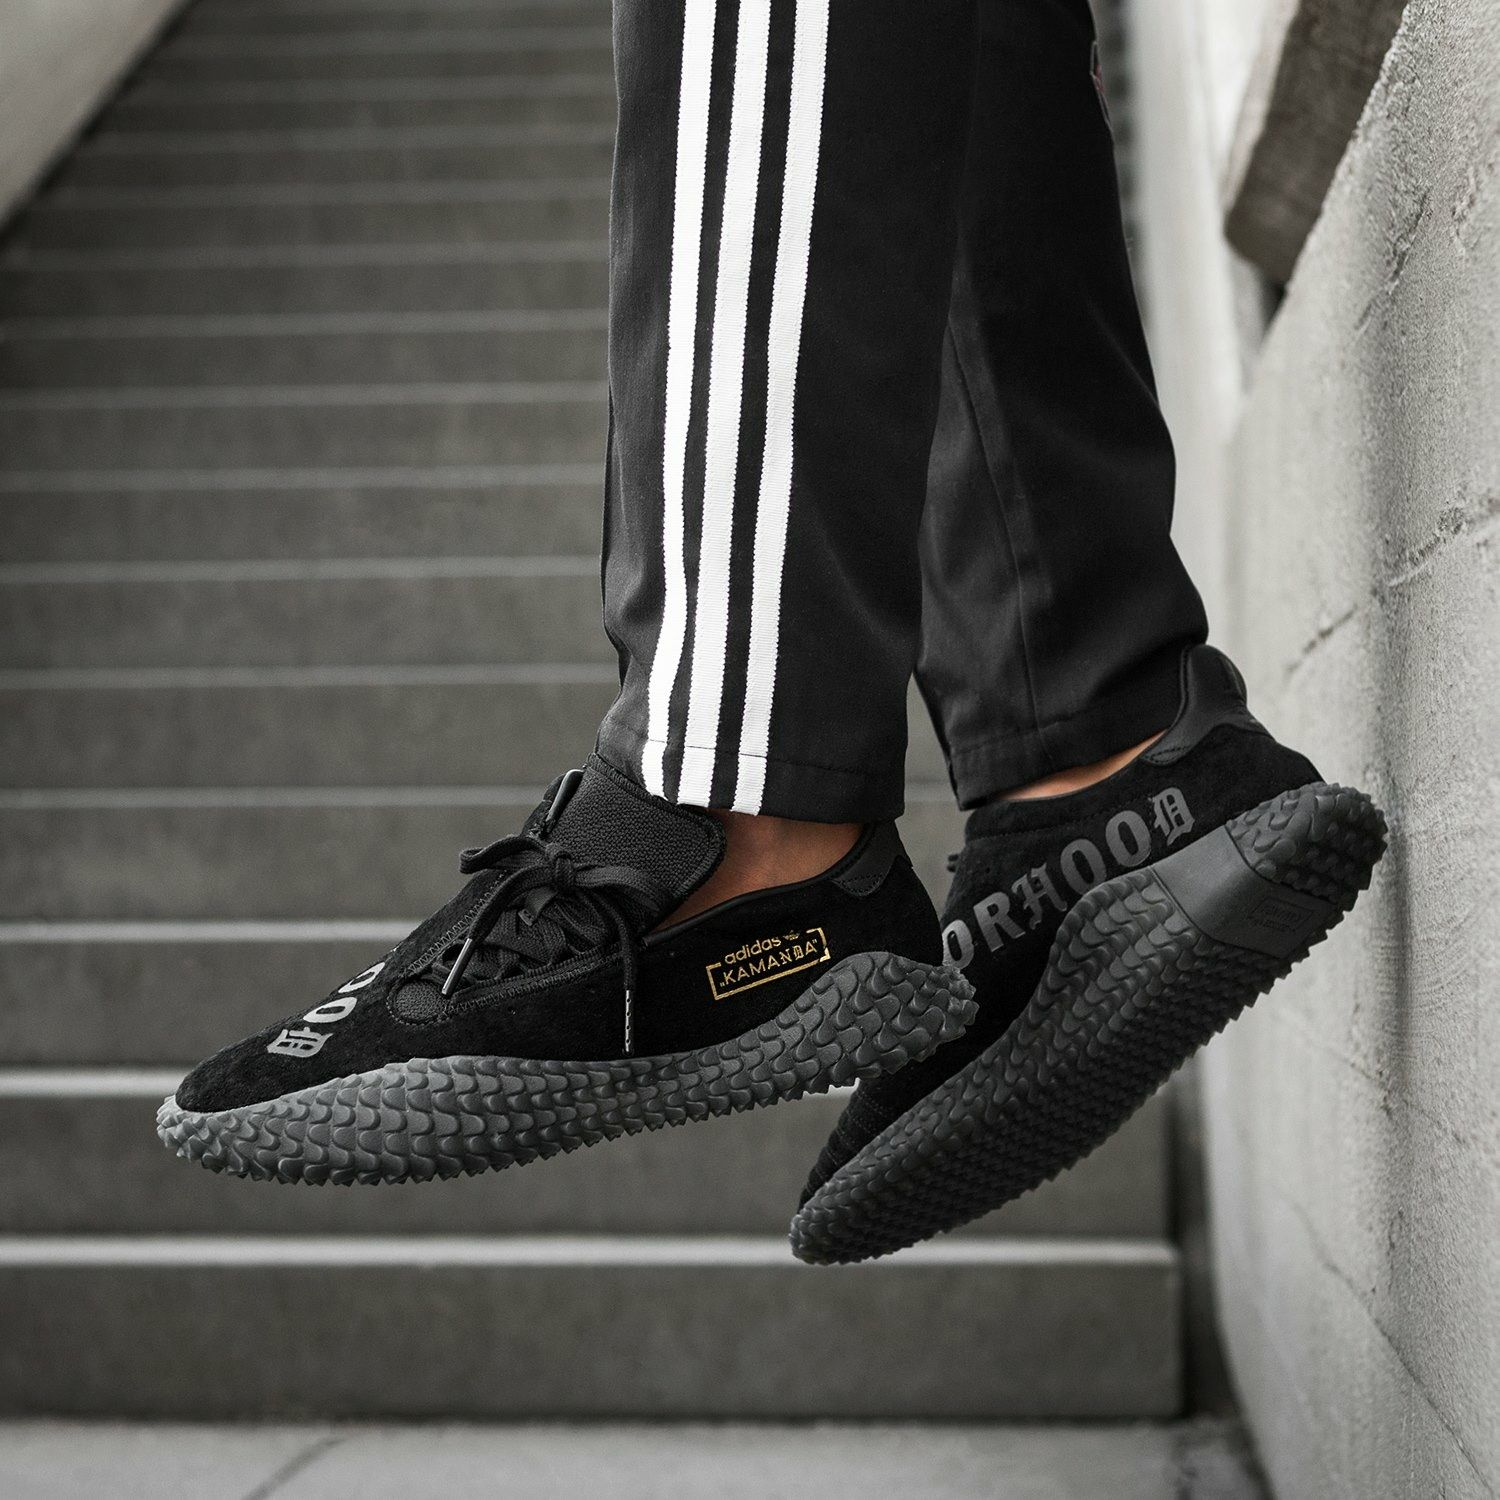 hot sale online b4d02 3fad2 NEIGHBORHOOD x adidas Originals Kamanda